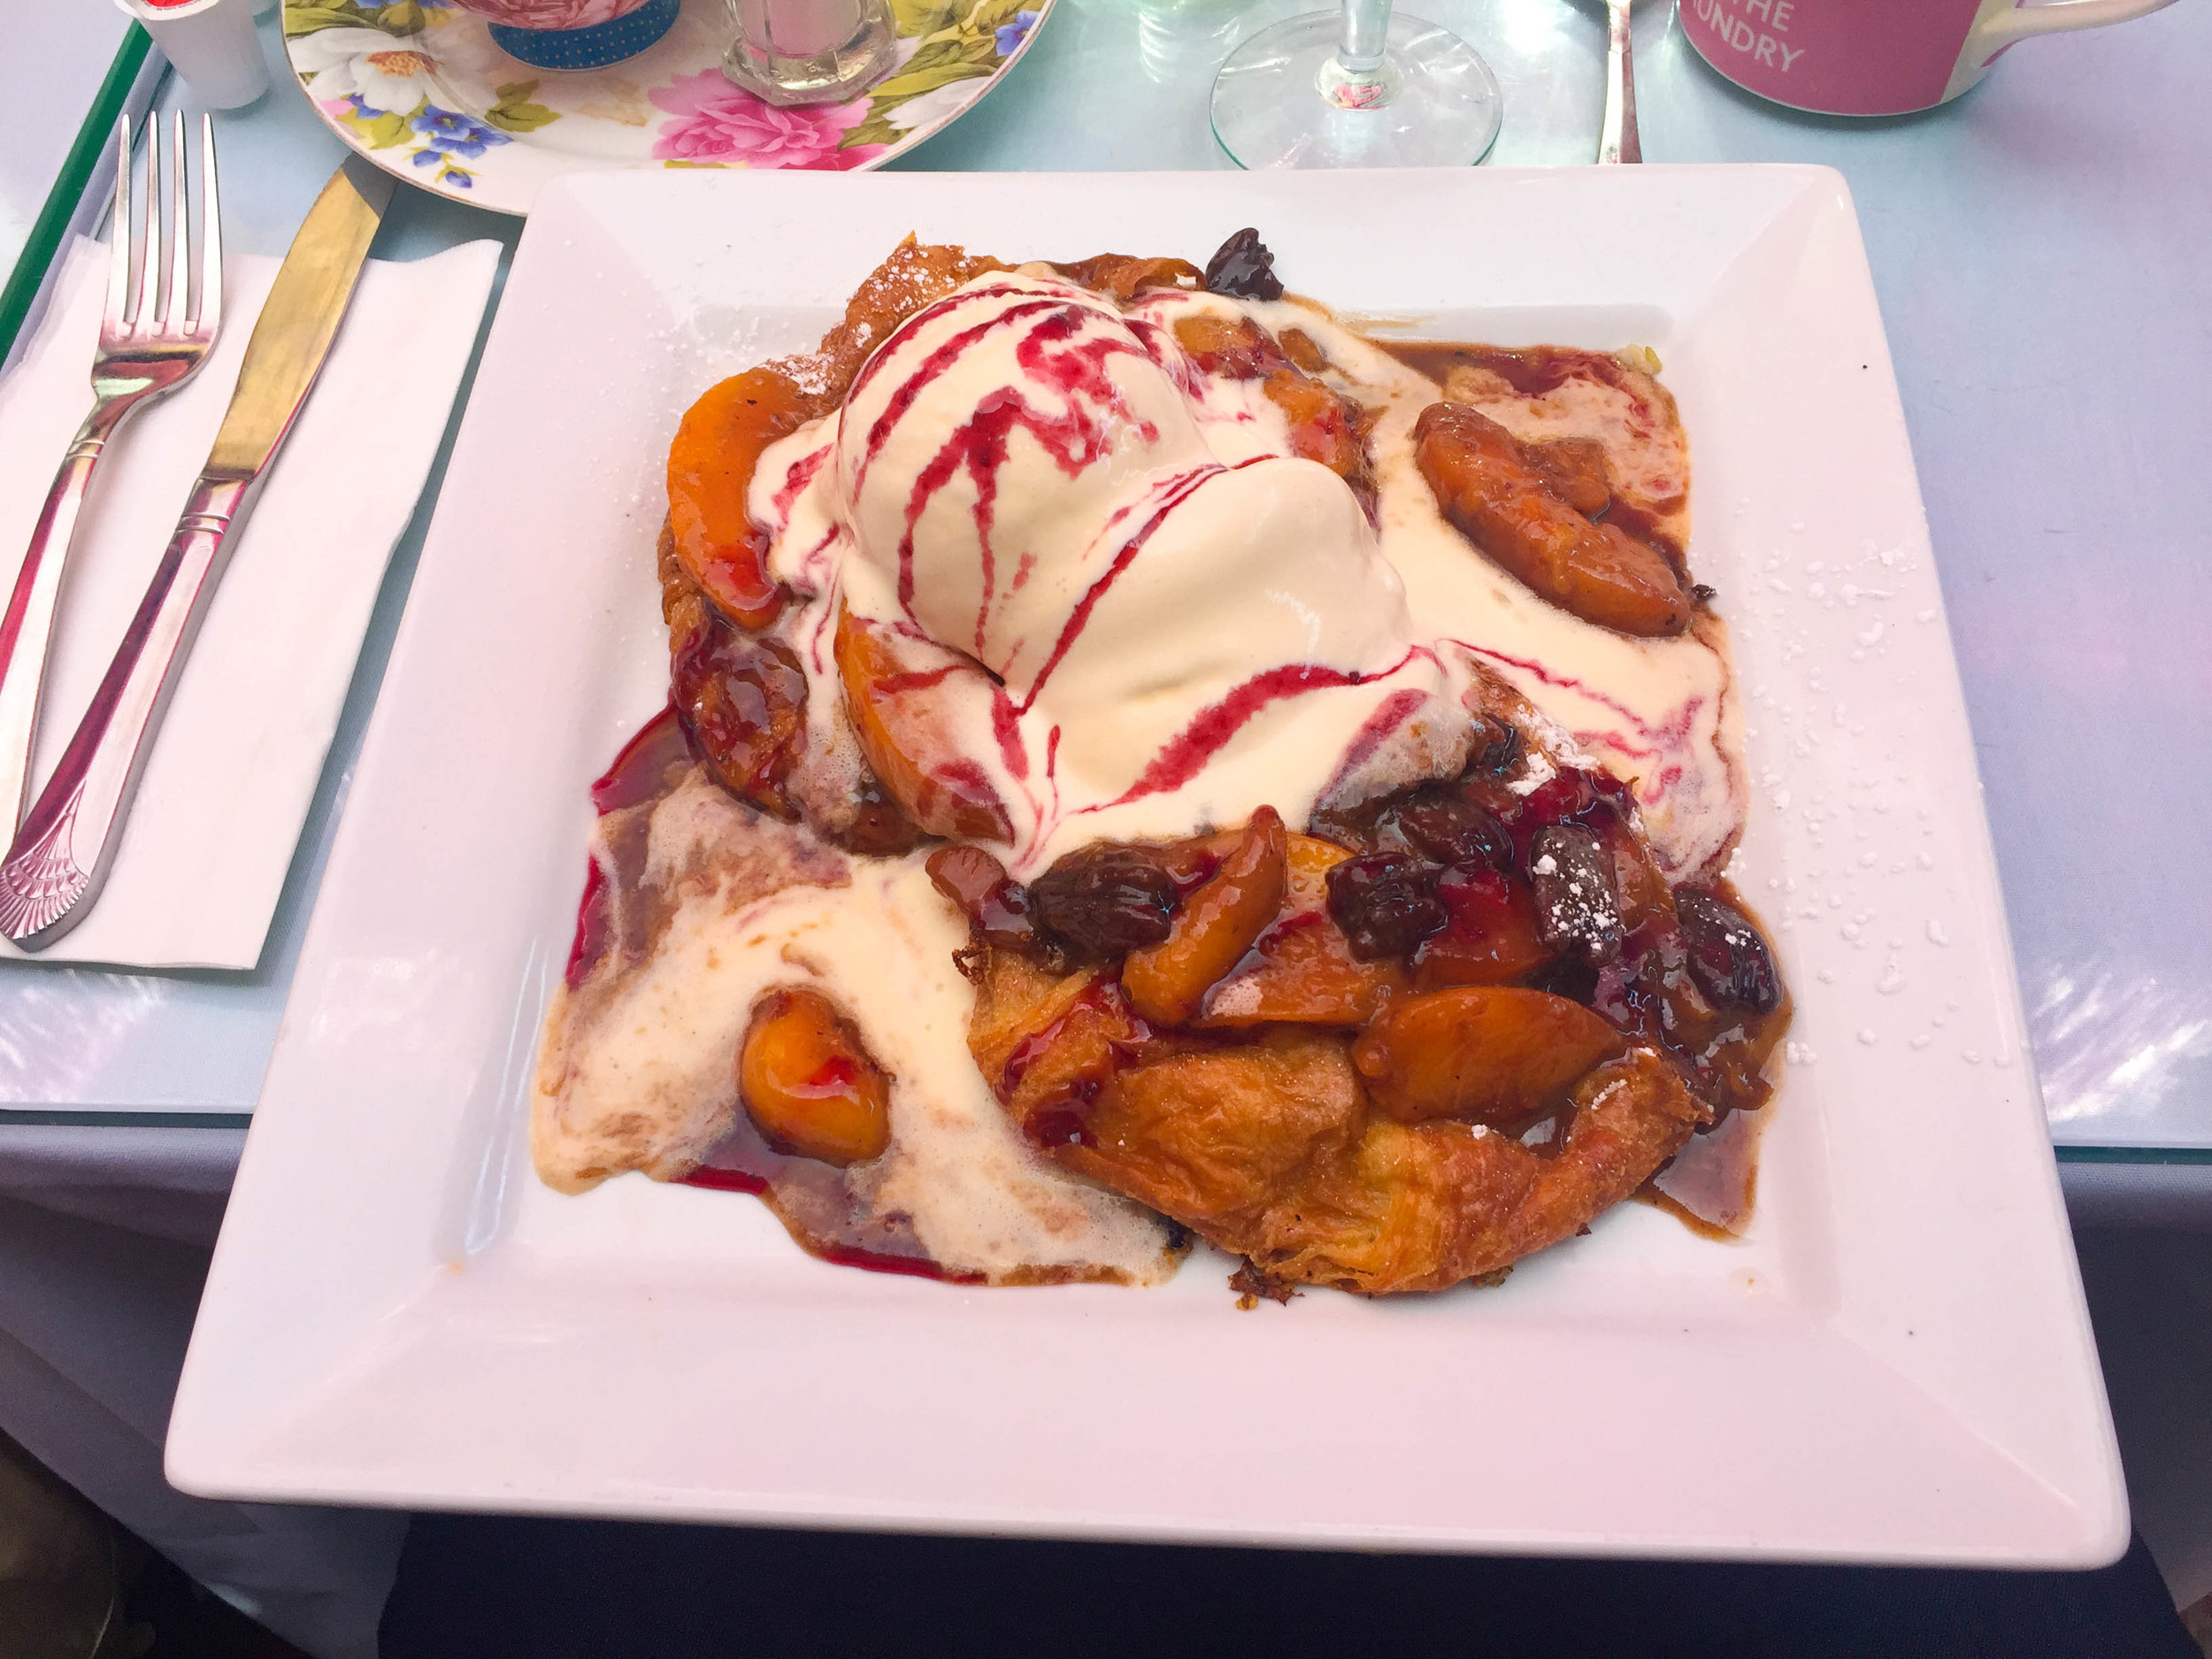 26 Beach Ice Cream French Toast Peach Melba